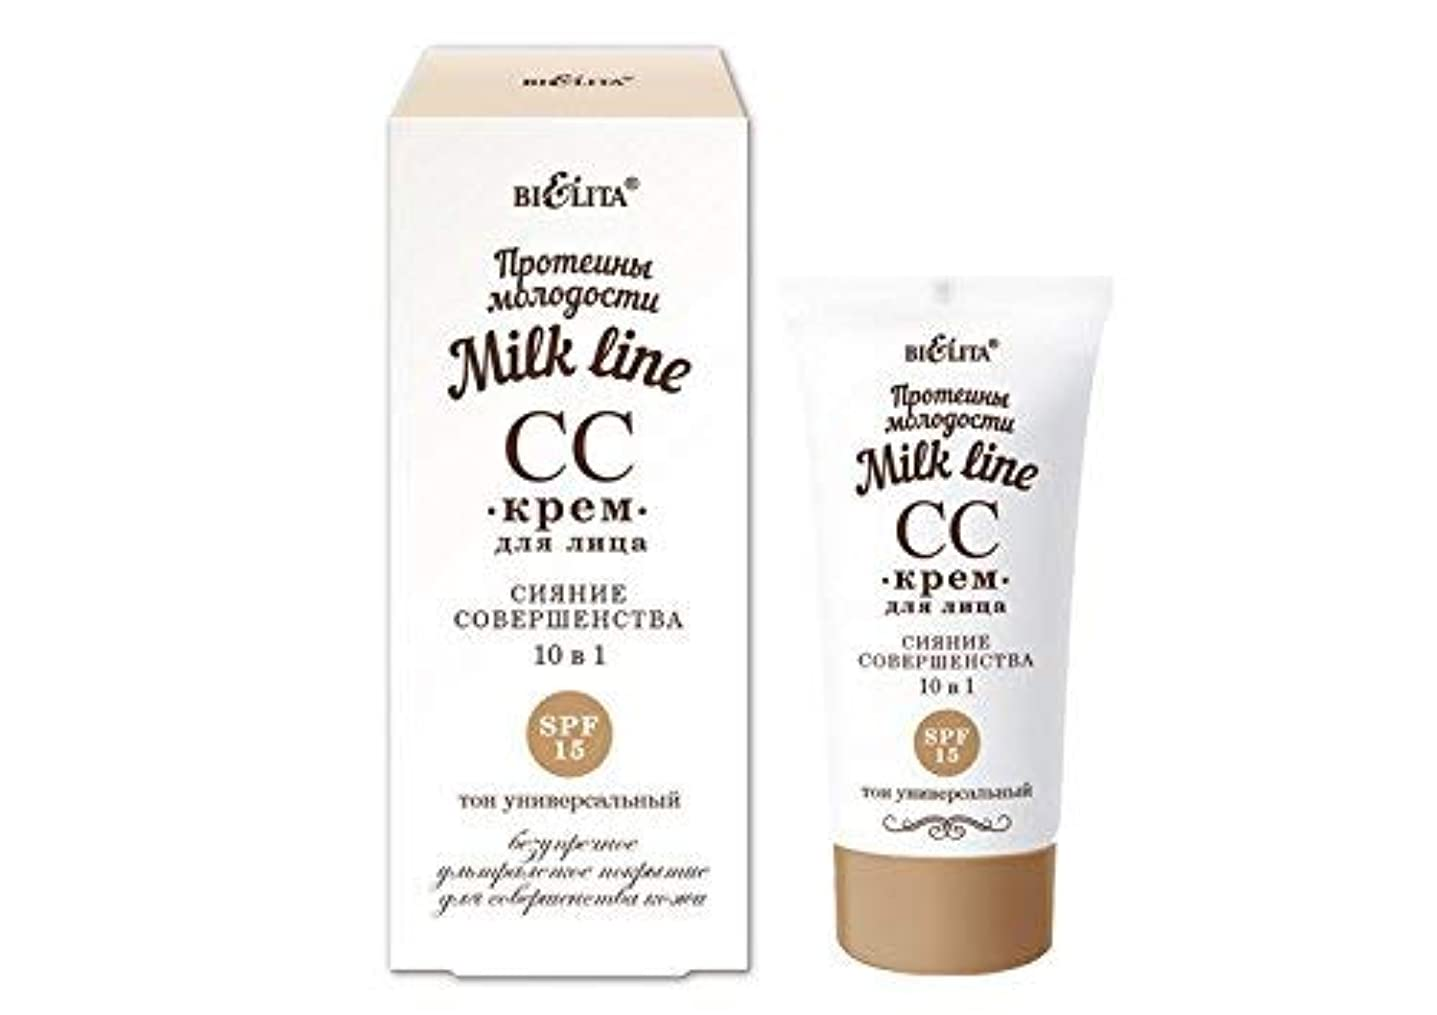 CC Cream,based on goat's milk Total Effects Tone Correcting Moisturizer with Sunscreen, Light to Medium 10 effects...